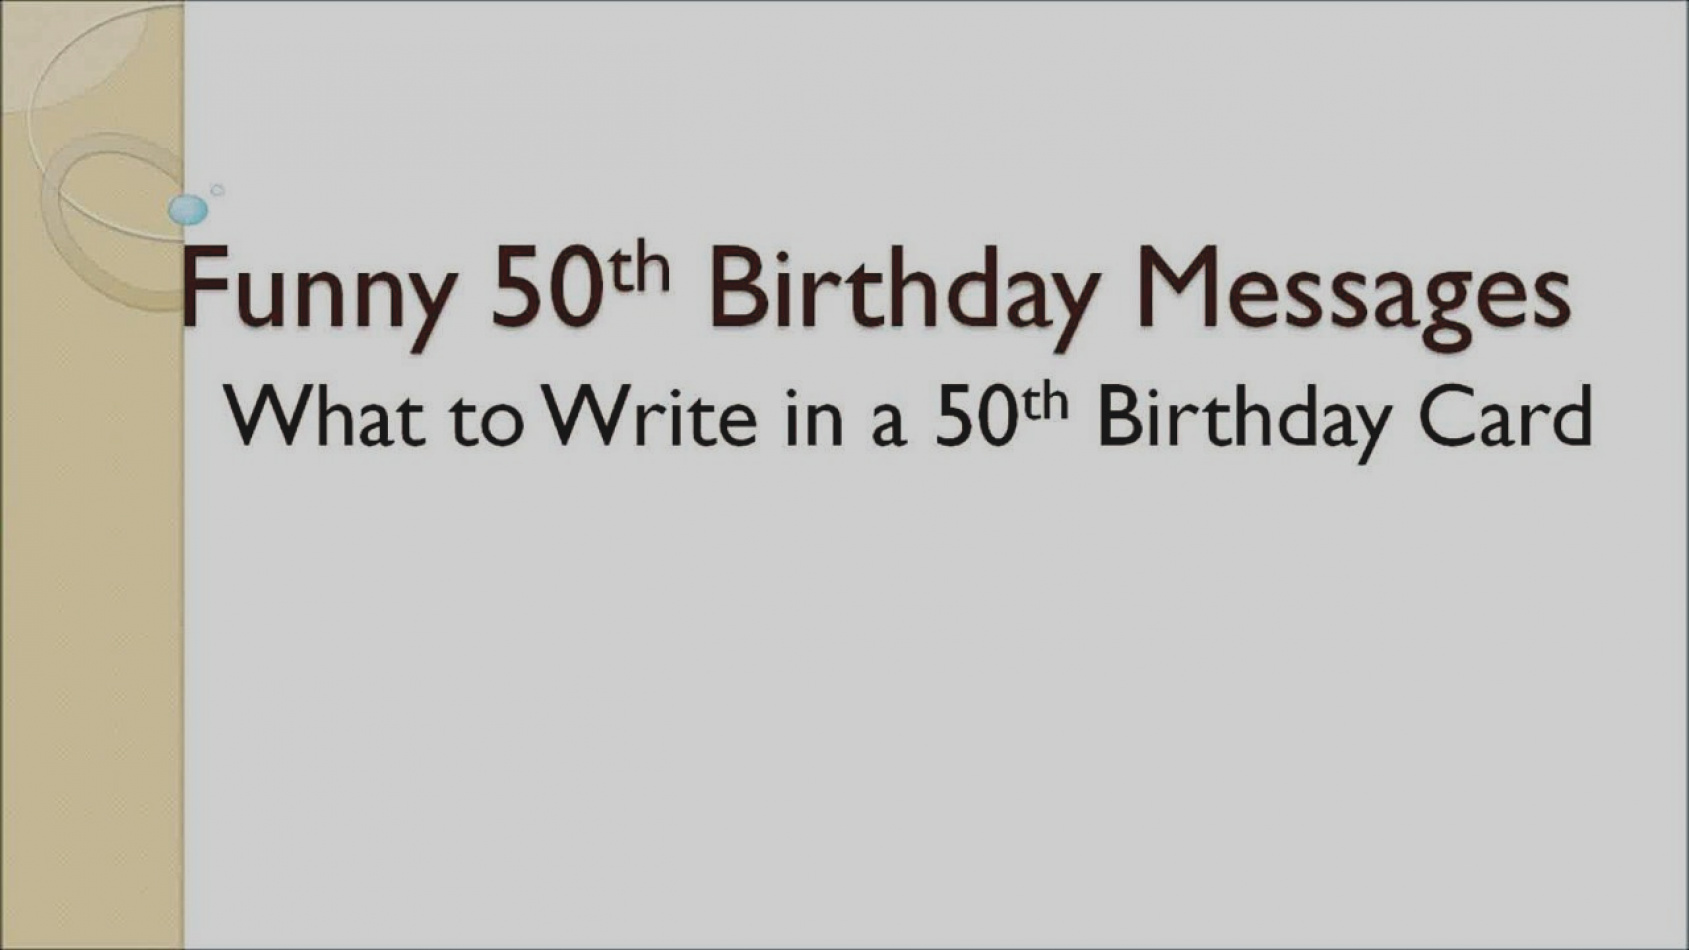 funny things to write on a 50th birthday card ; images-of-what-to-write-in-a-50th-birthday-card-funny-messages-video-dailymotion